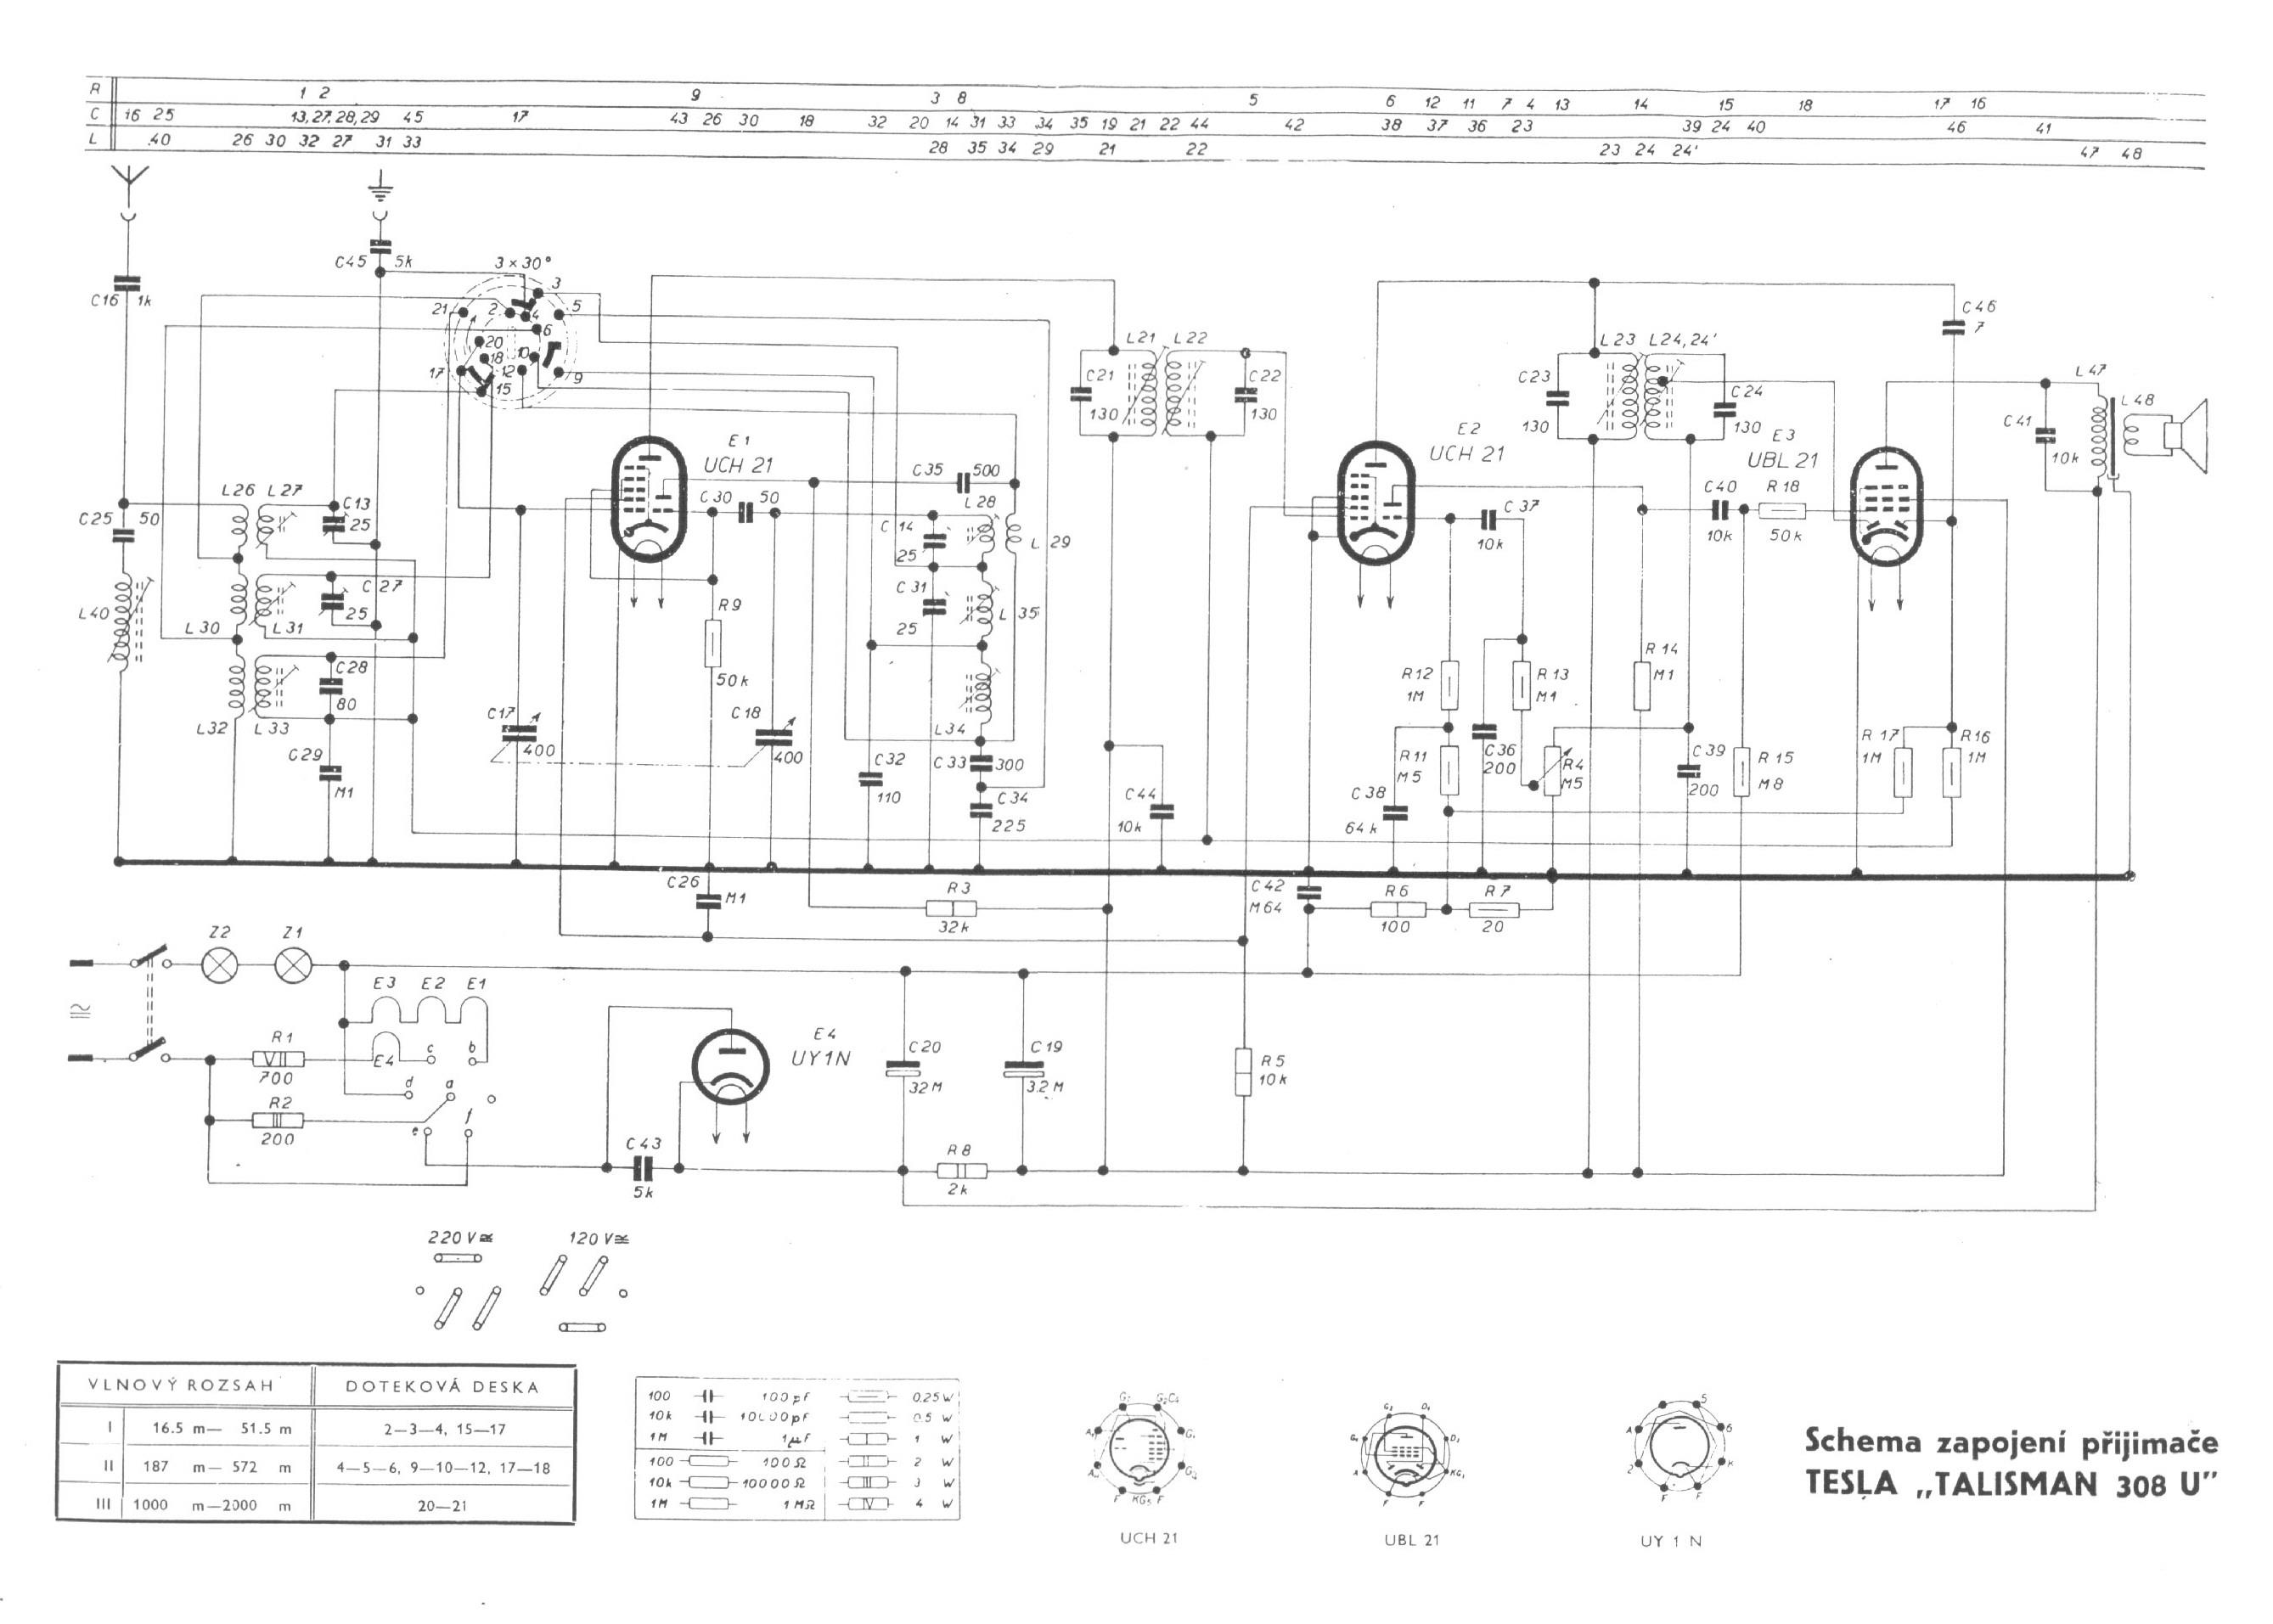 wiring diagram schematics for a tesla coil with Tesla308u on Microwave Oven Diagram Block further Tesla Coil Project And Other High Voltage Projects further Taurus Revolver Exploded Diagram moreover Honda 5000 Generator Schematic as well Tesla308u.